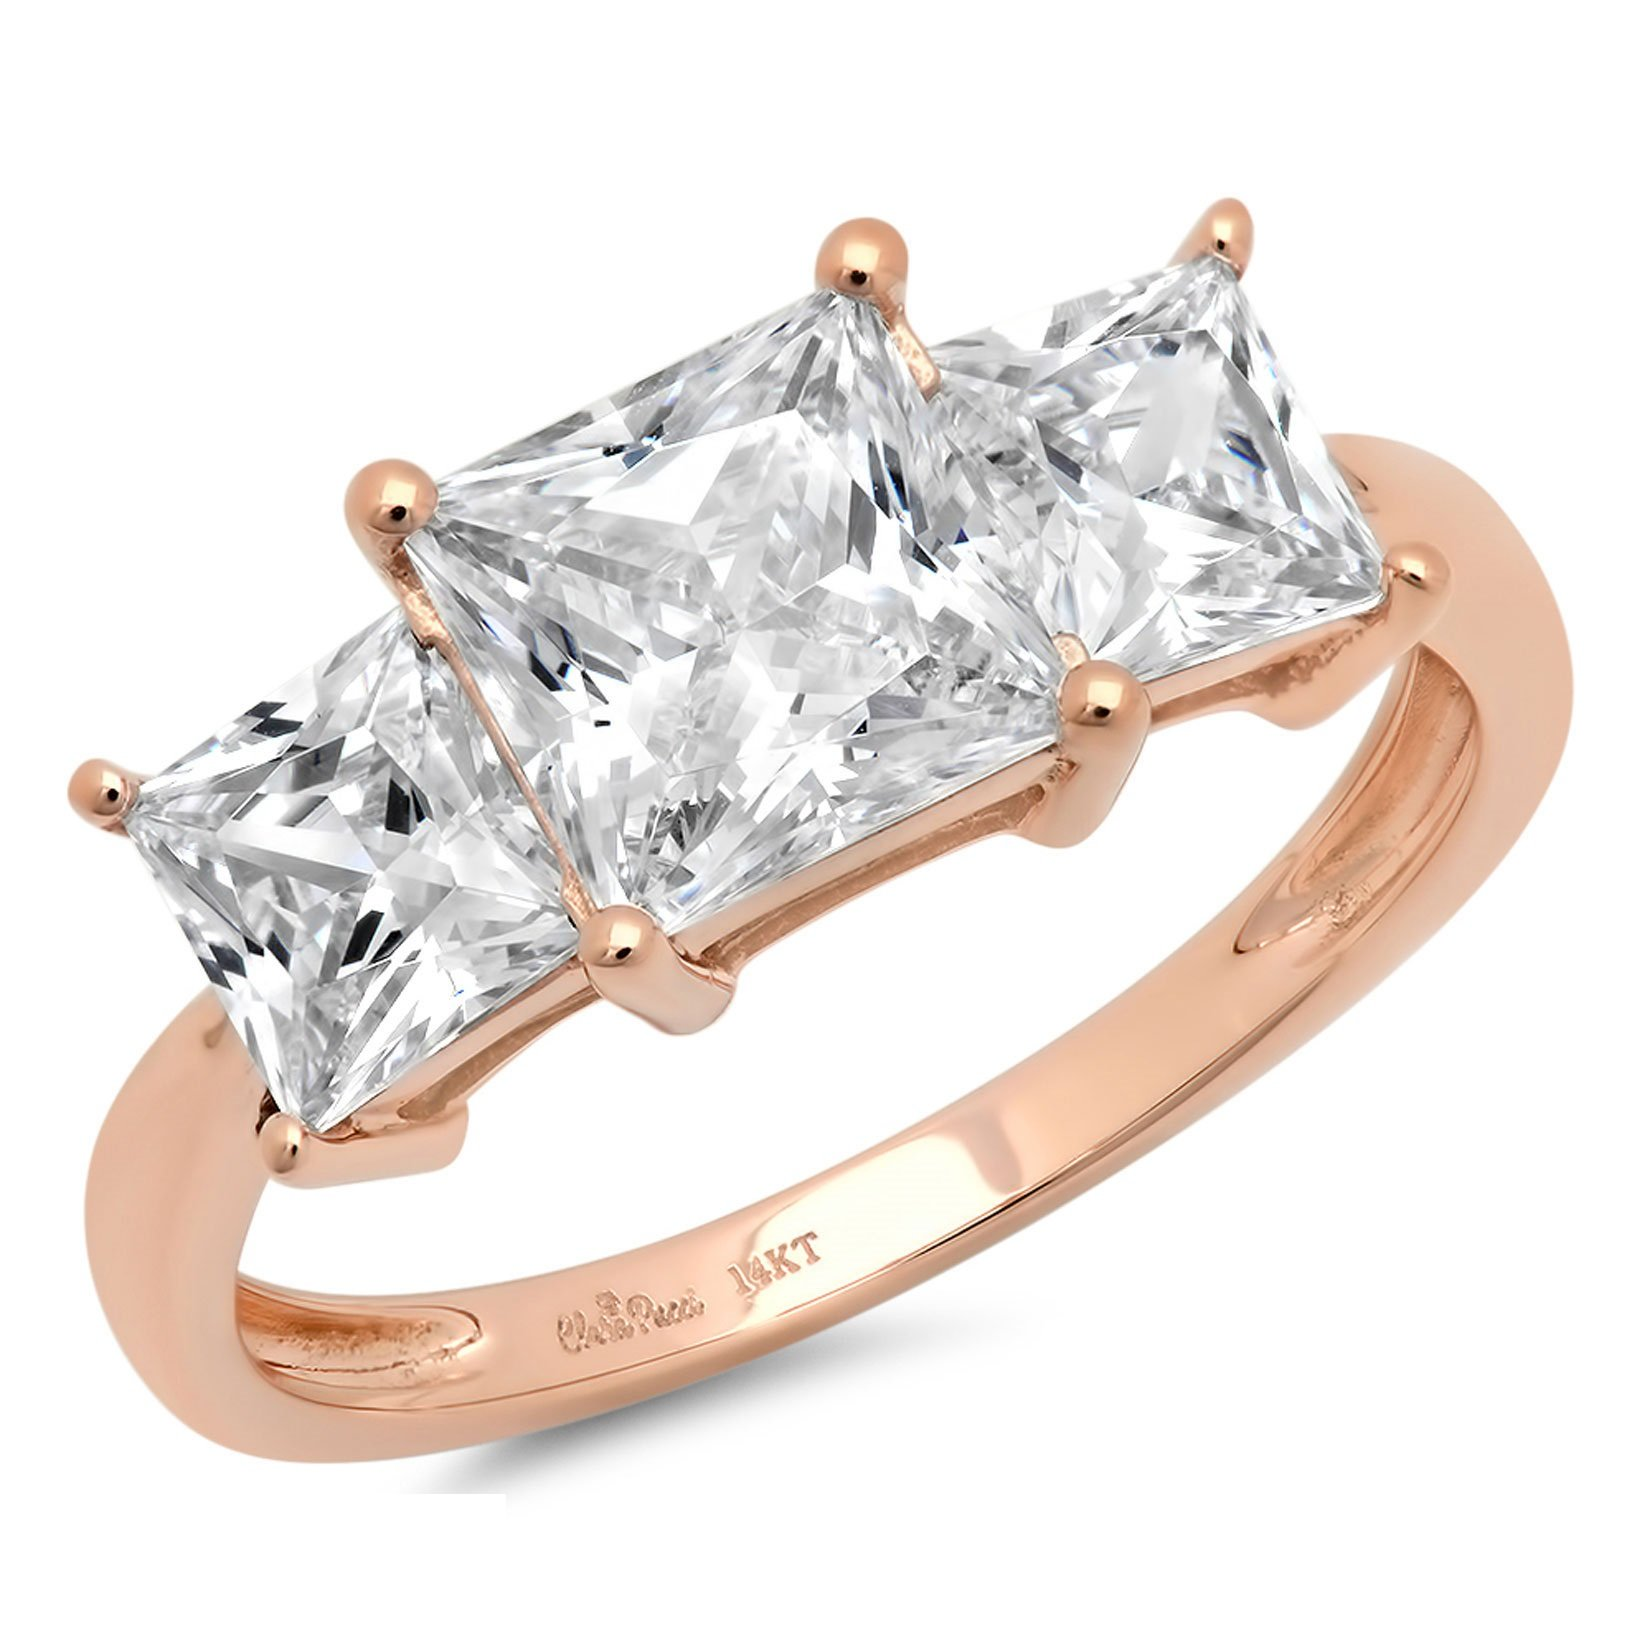 Clara Pucci 3.2 Ct Three Stone Princess Cut Solitaire Bridal Anniversary Engagement Wedding Ring Band 14K Rose Gold, Size 8 by Clara Pucci